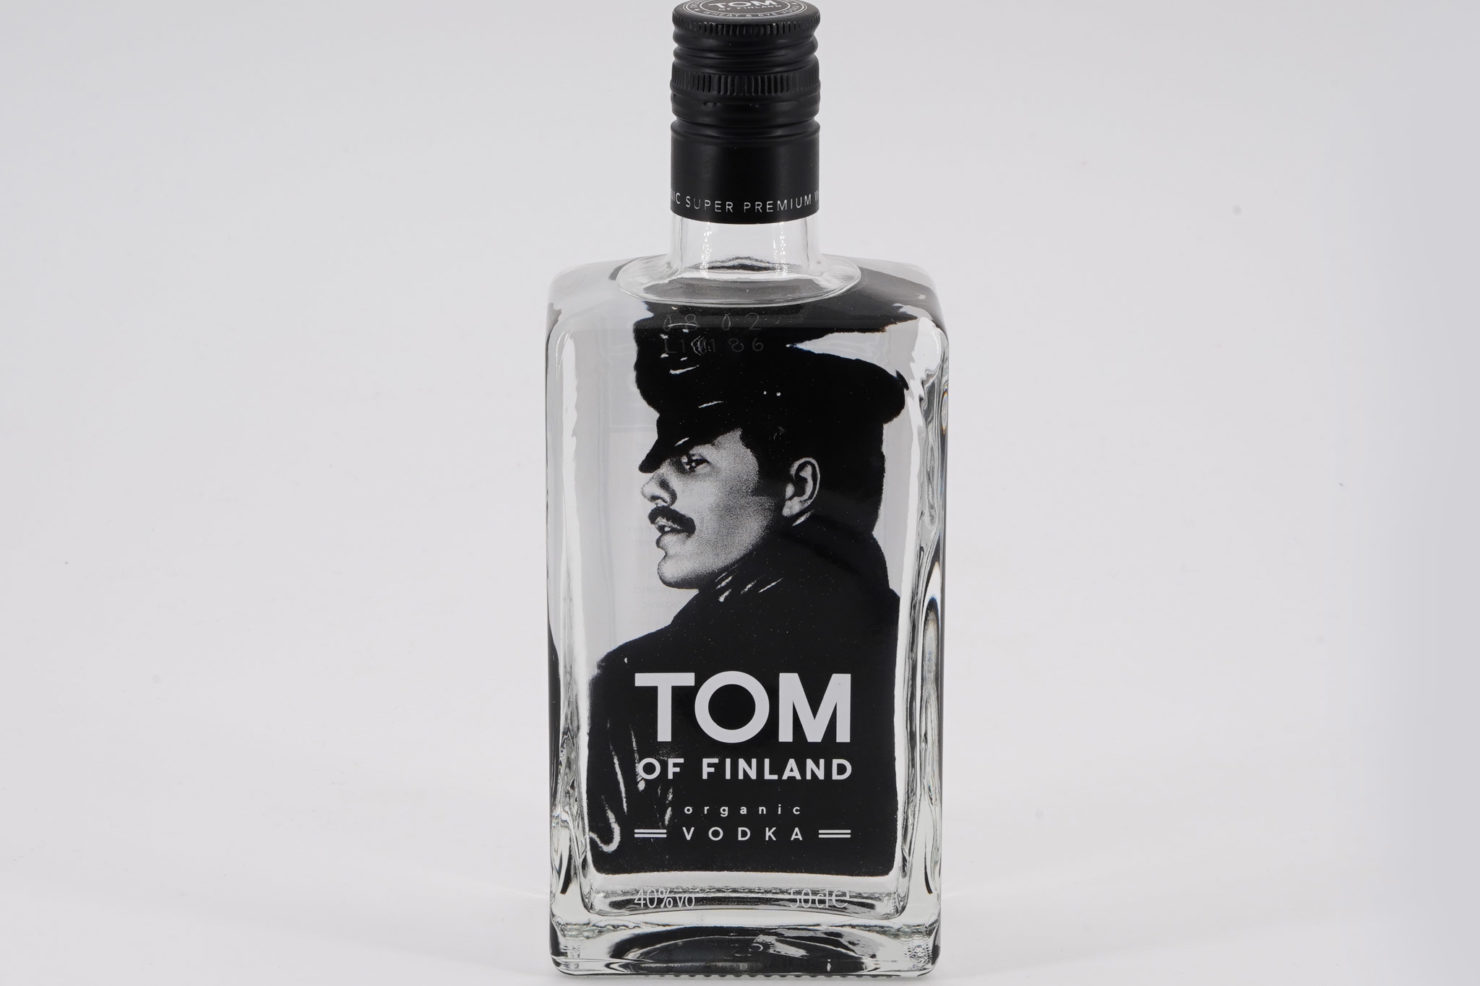 TOM OF FINLAND VODKA 50 ML SPIRIT OF TOM